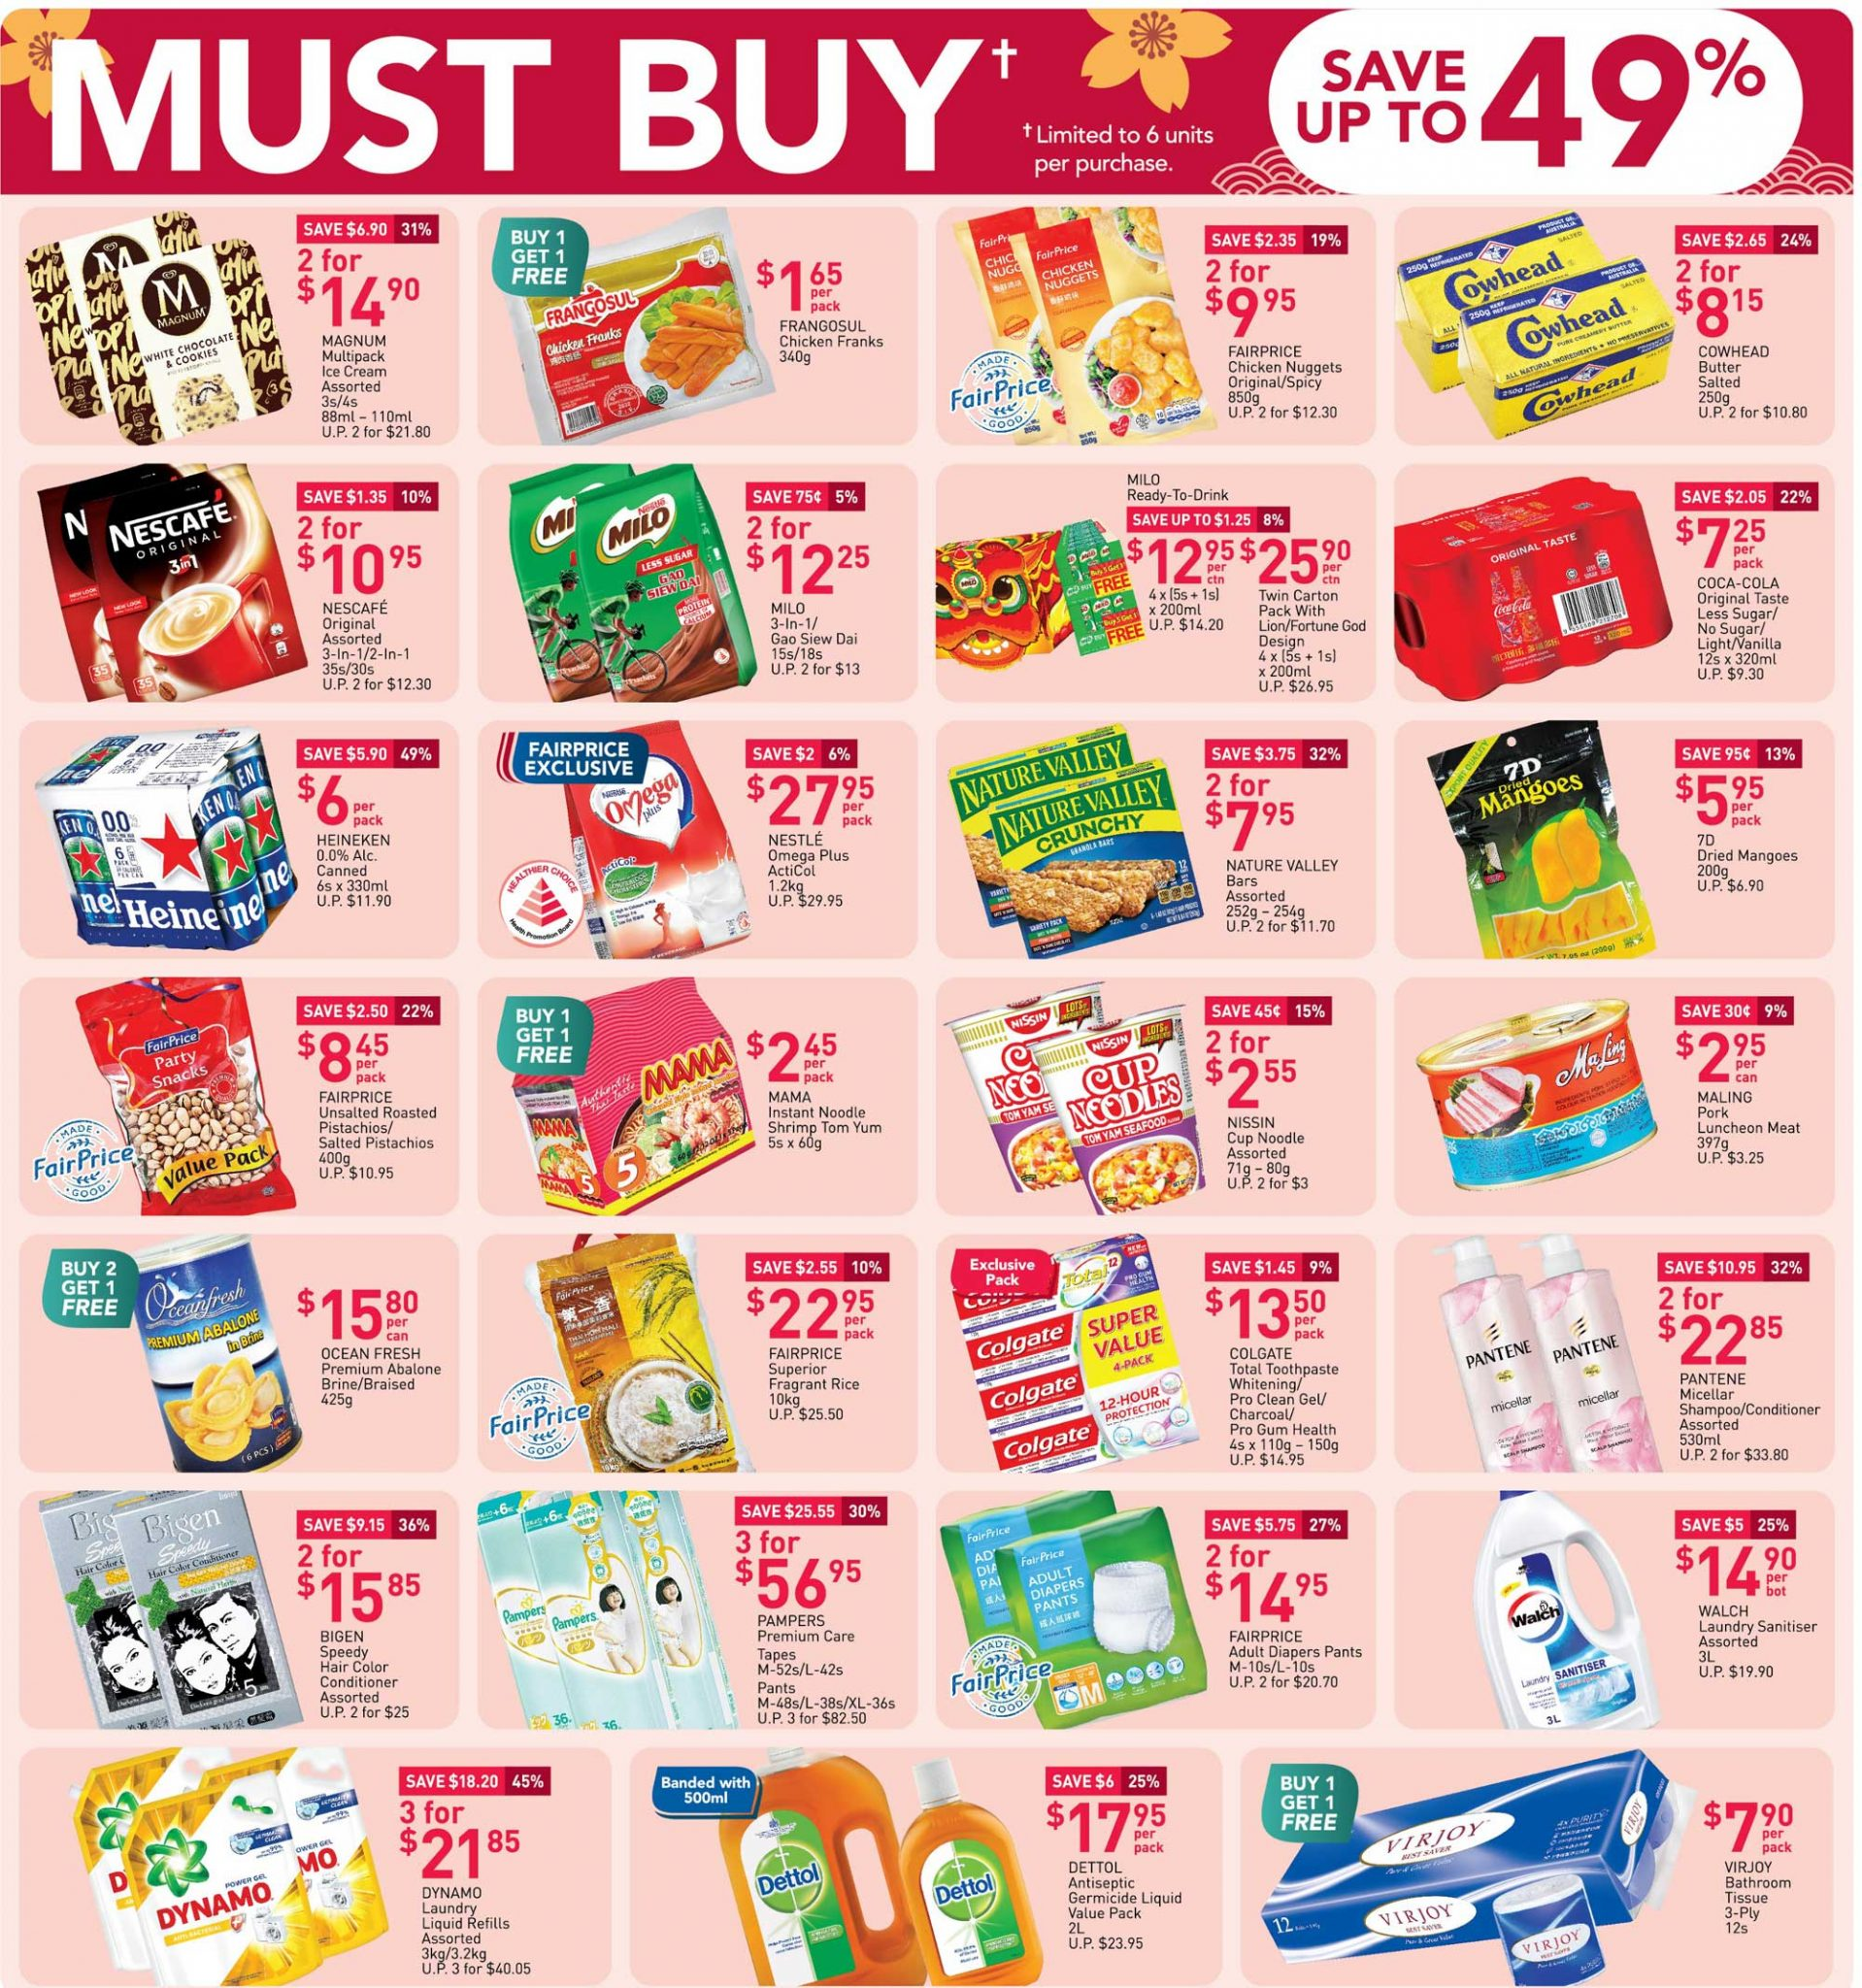 Must-buy items from now till 6 January 2021